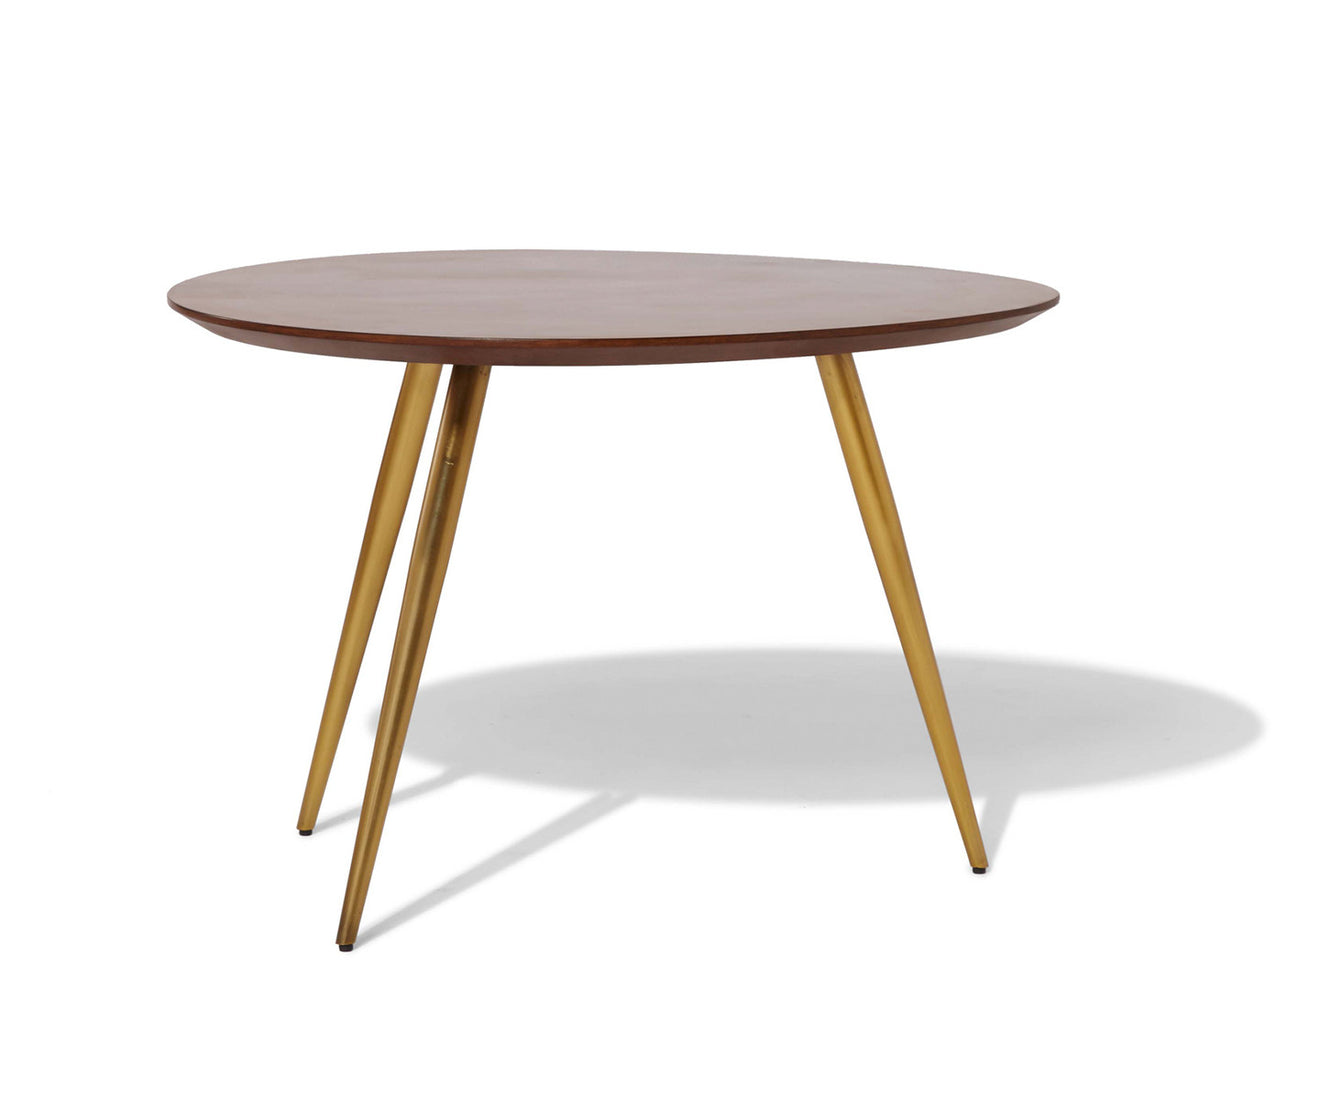 Lily Pad Nesting Tables TEMPORARILY UNAVAILABLE West Elm WORKSPACE - Table pad material